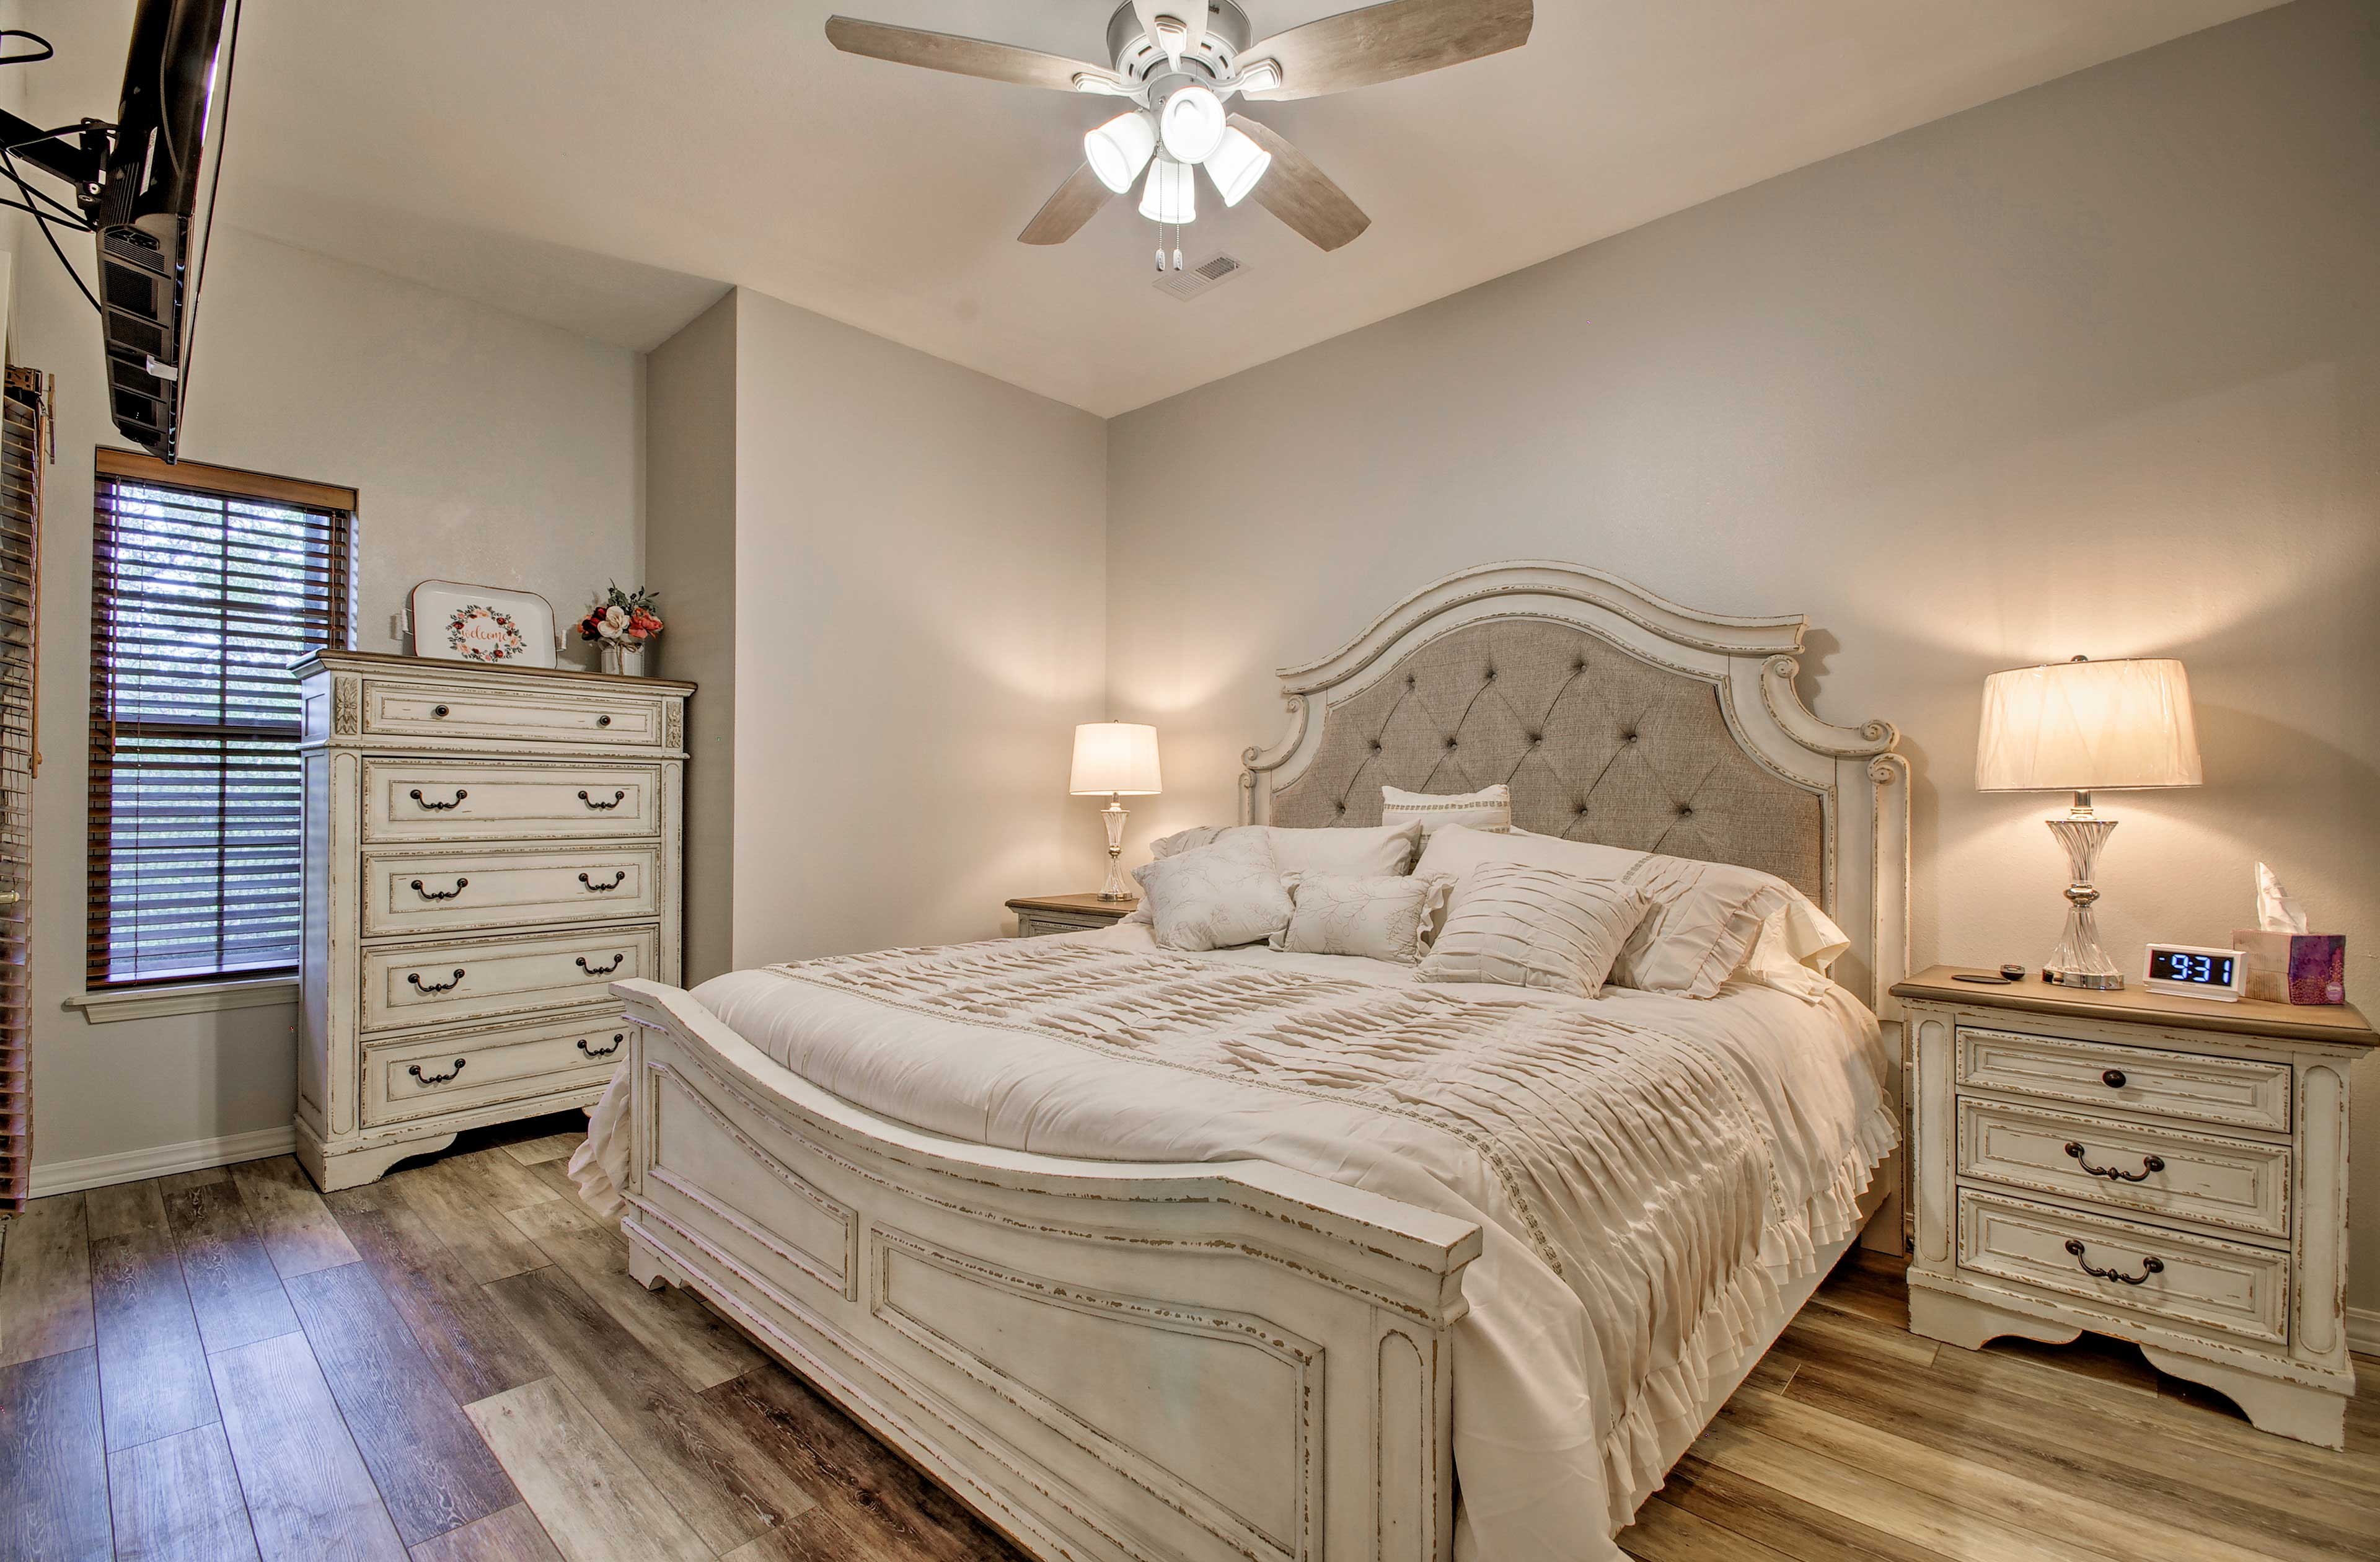 The master bedroom features a grand king-sized bed.